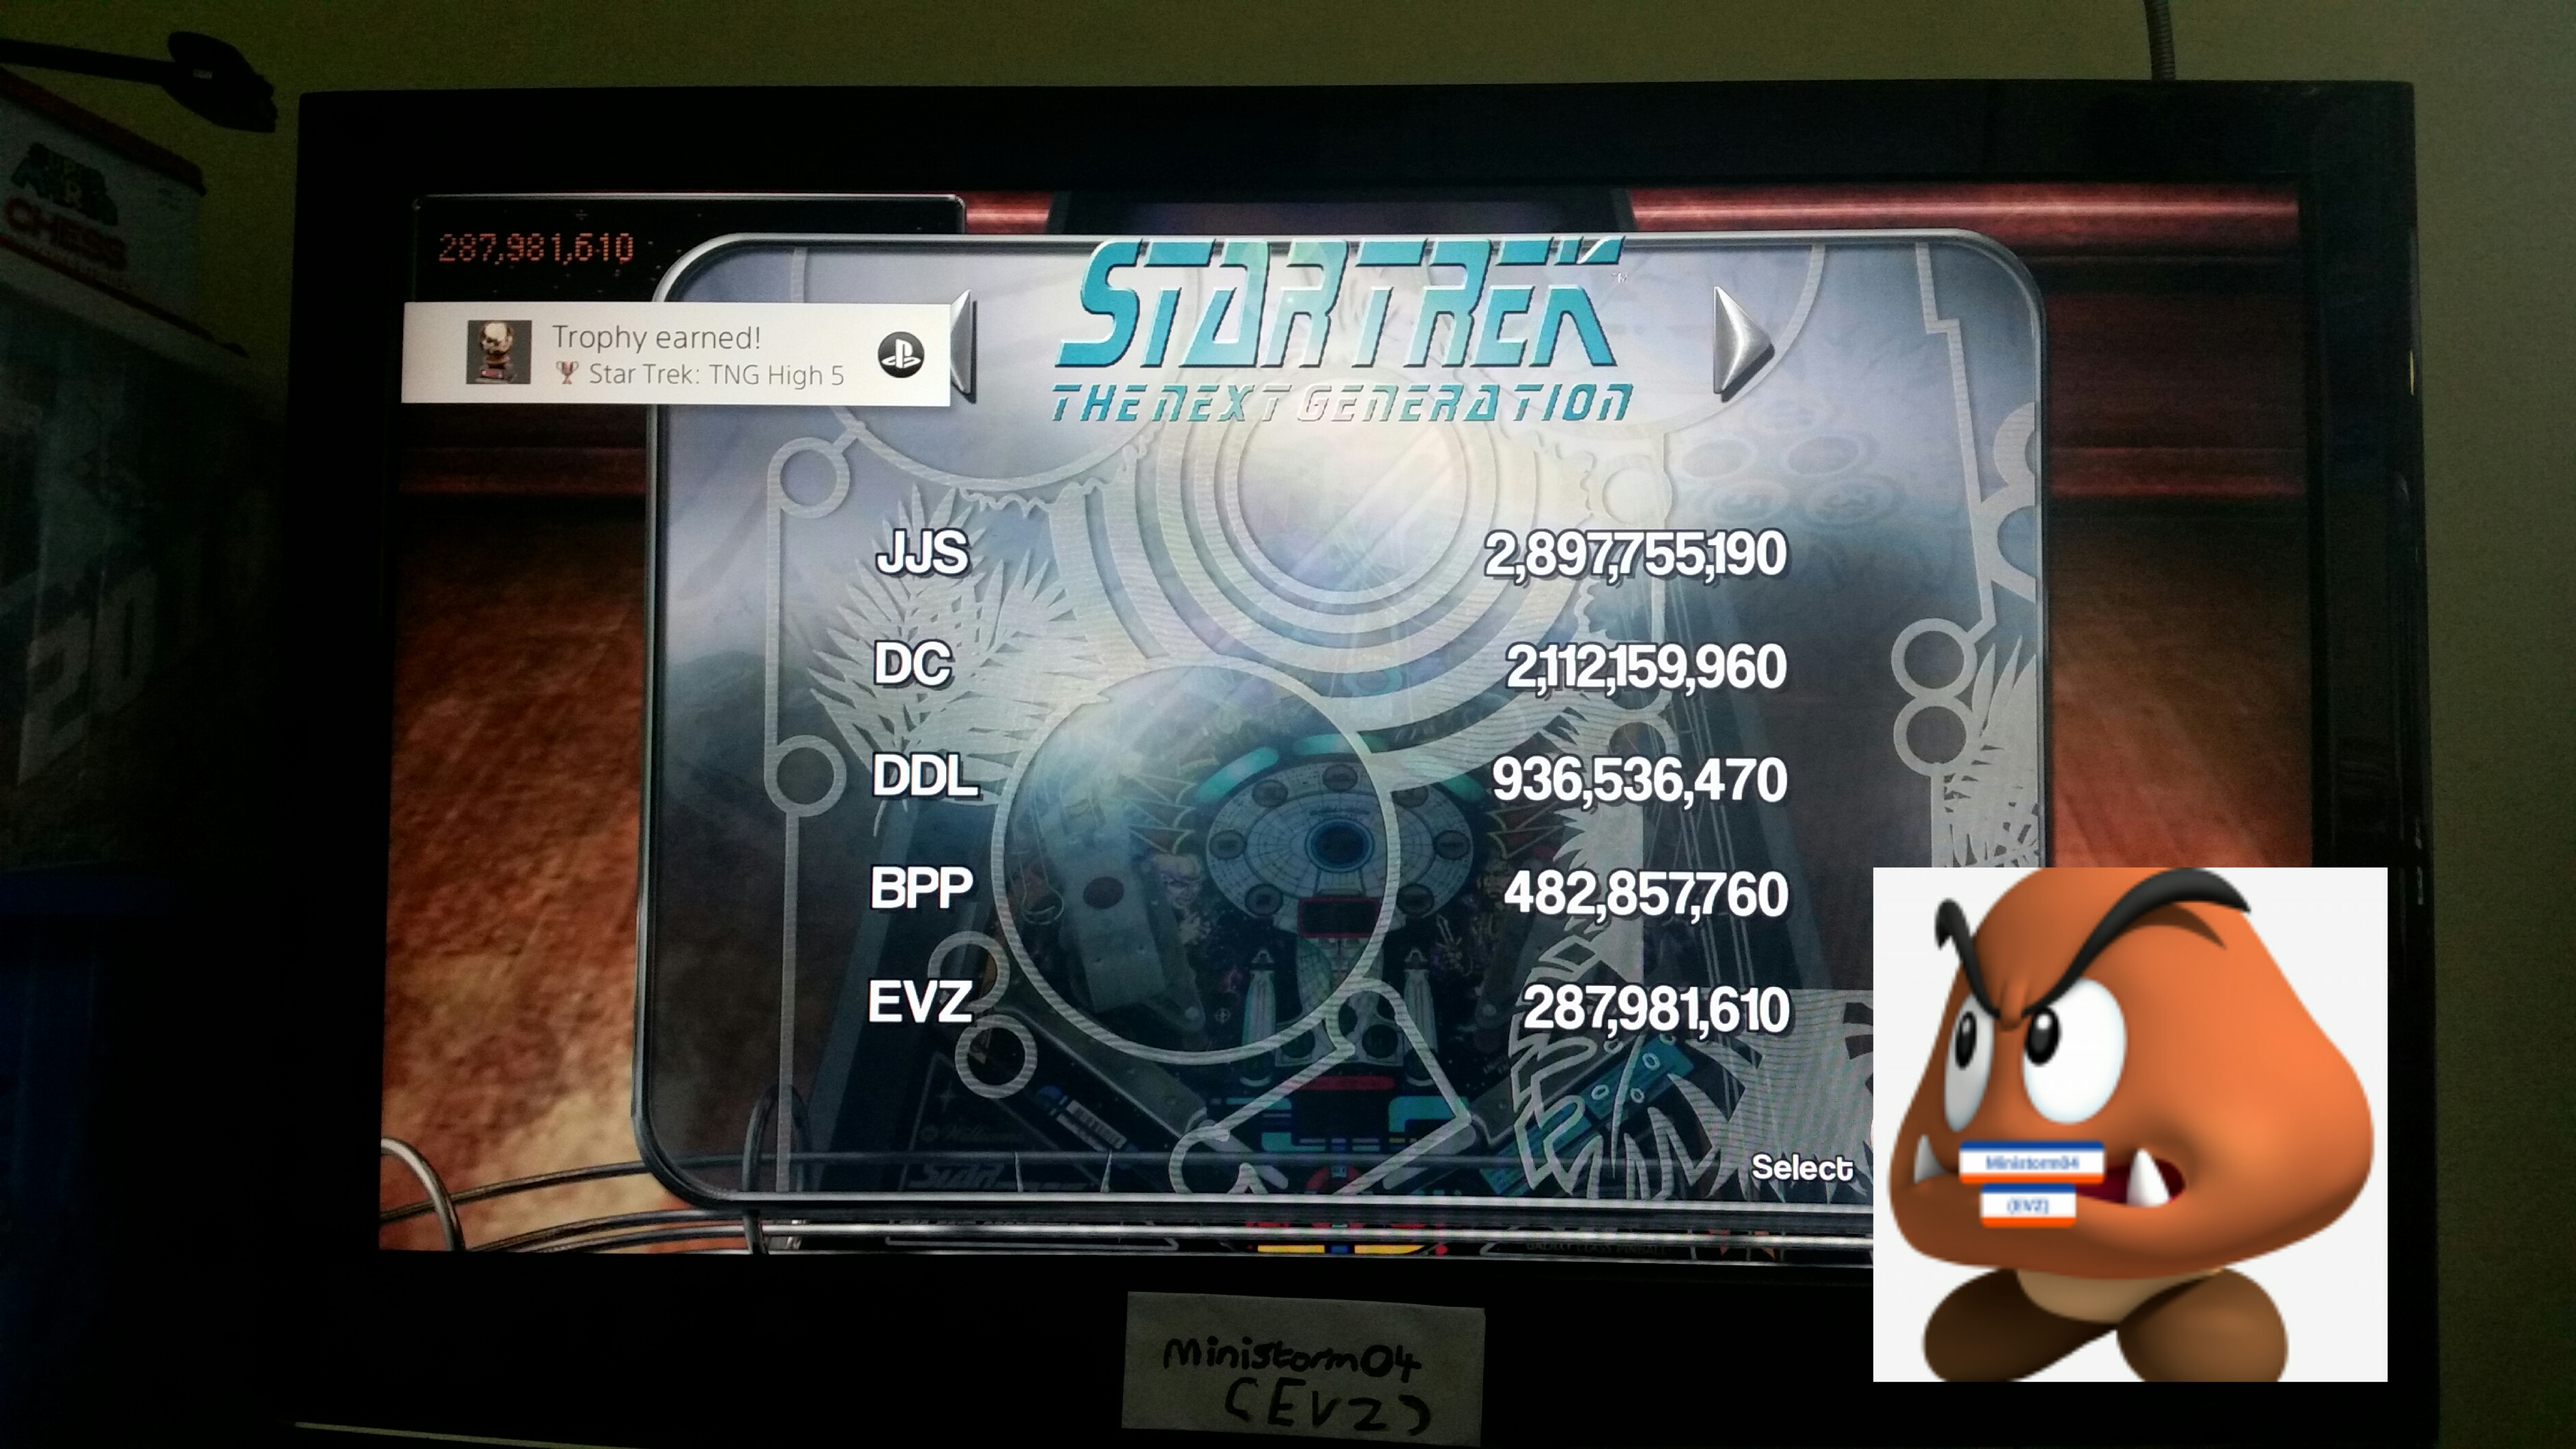 Pinball Arcade: Star Trek: The Next Generation 287,981,610 points